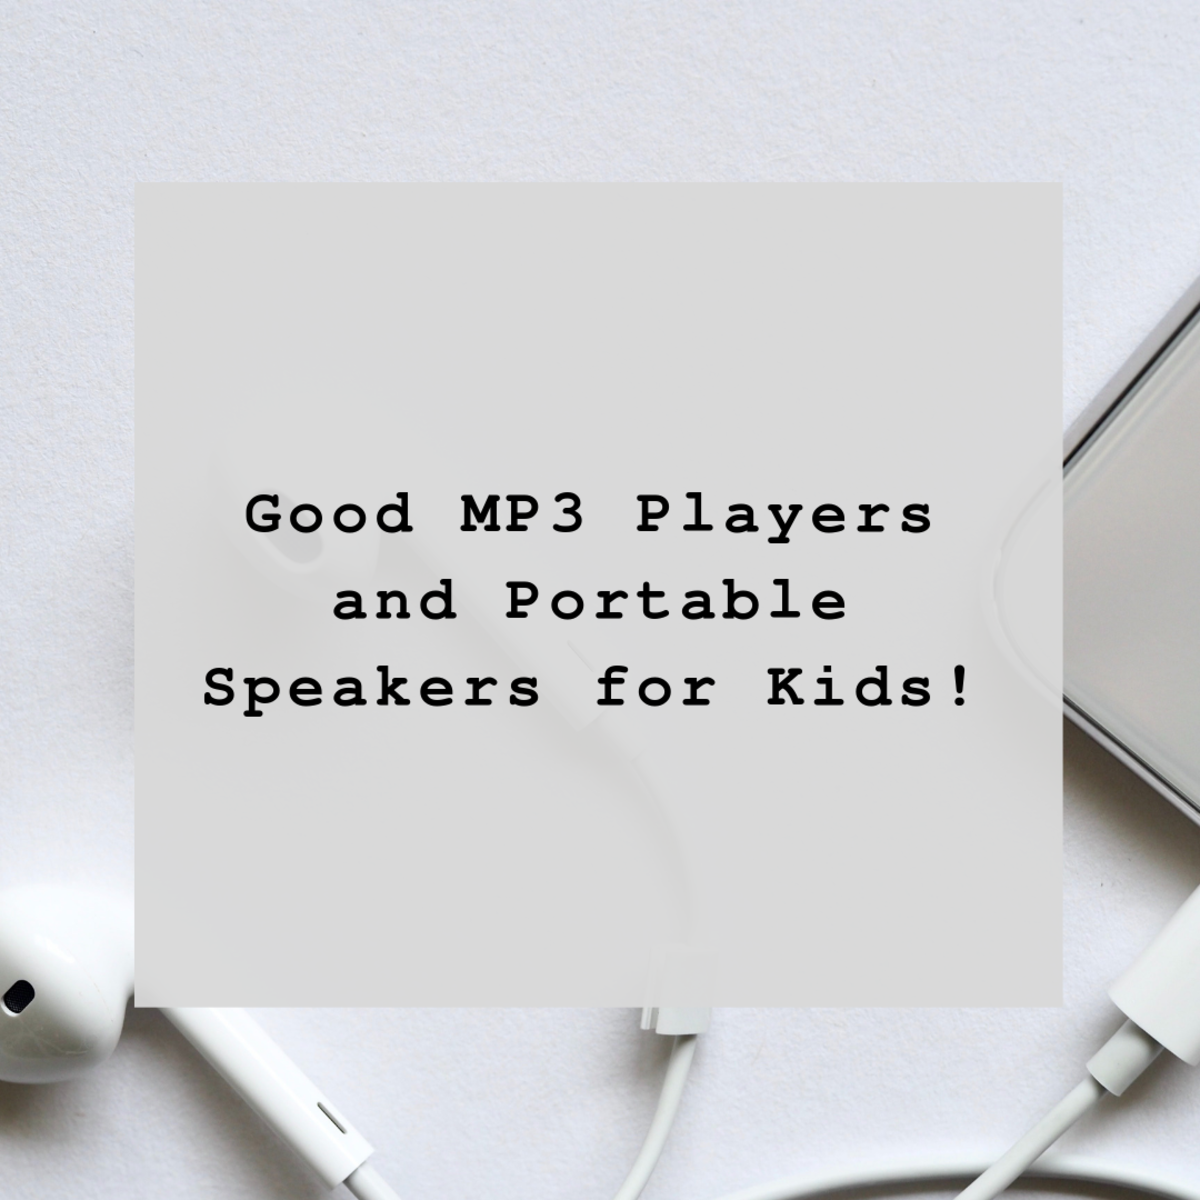 Good MP3 Players and Portable Speakers for Kids!